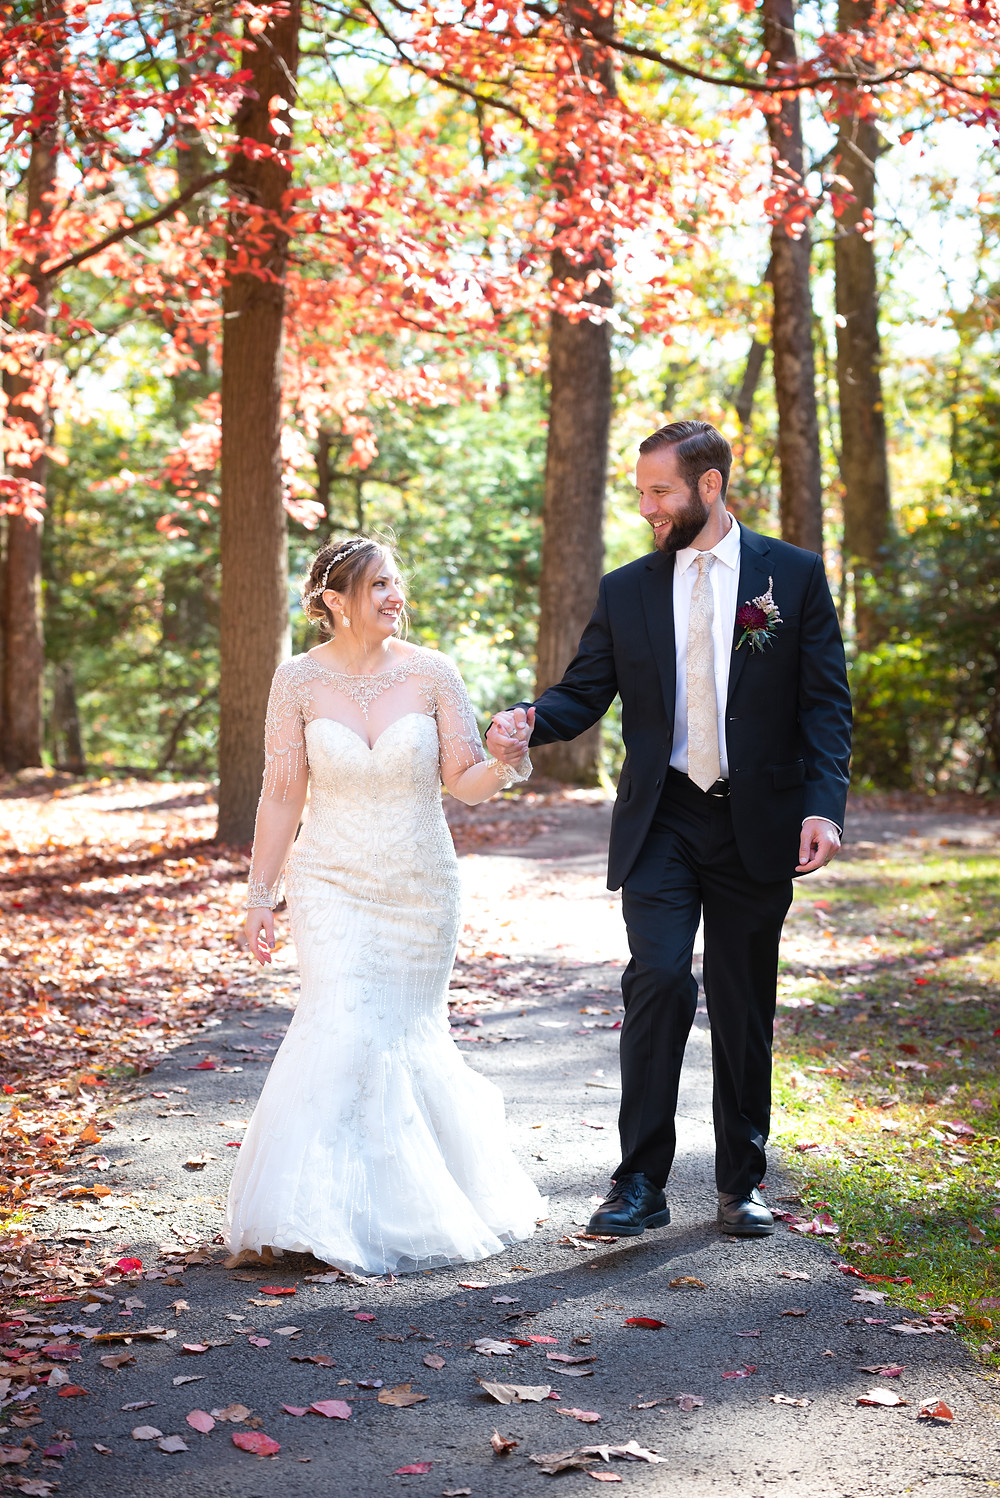 Bride and groom portraits in the woods; Walking and holding hands